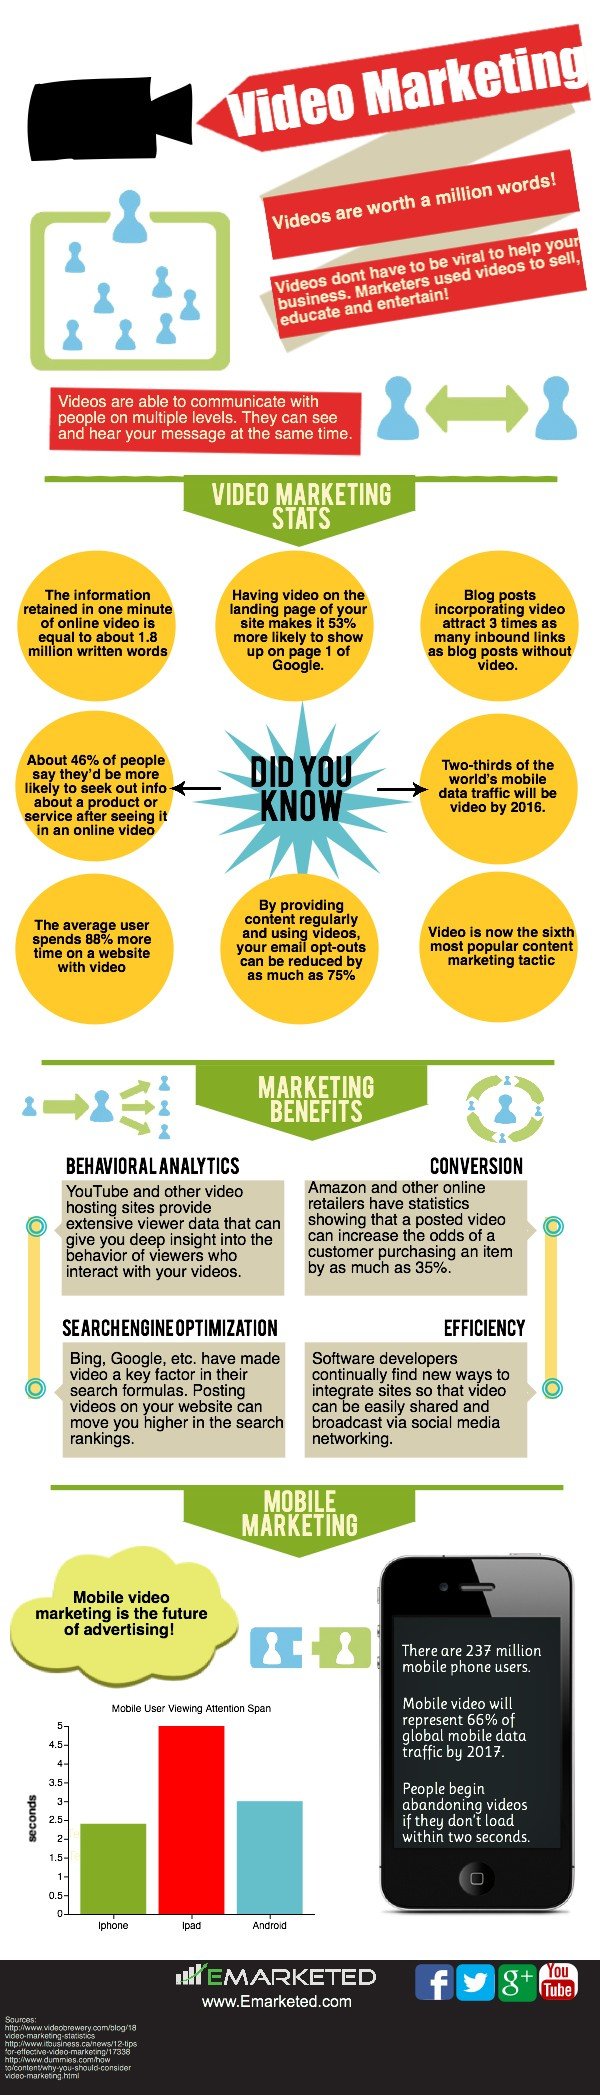 Video-Marketing-Stats-Infographic